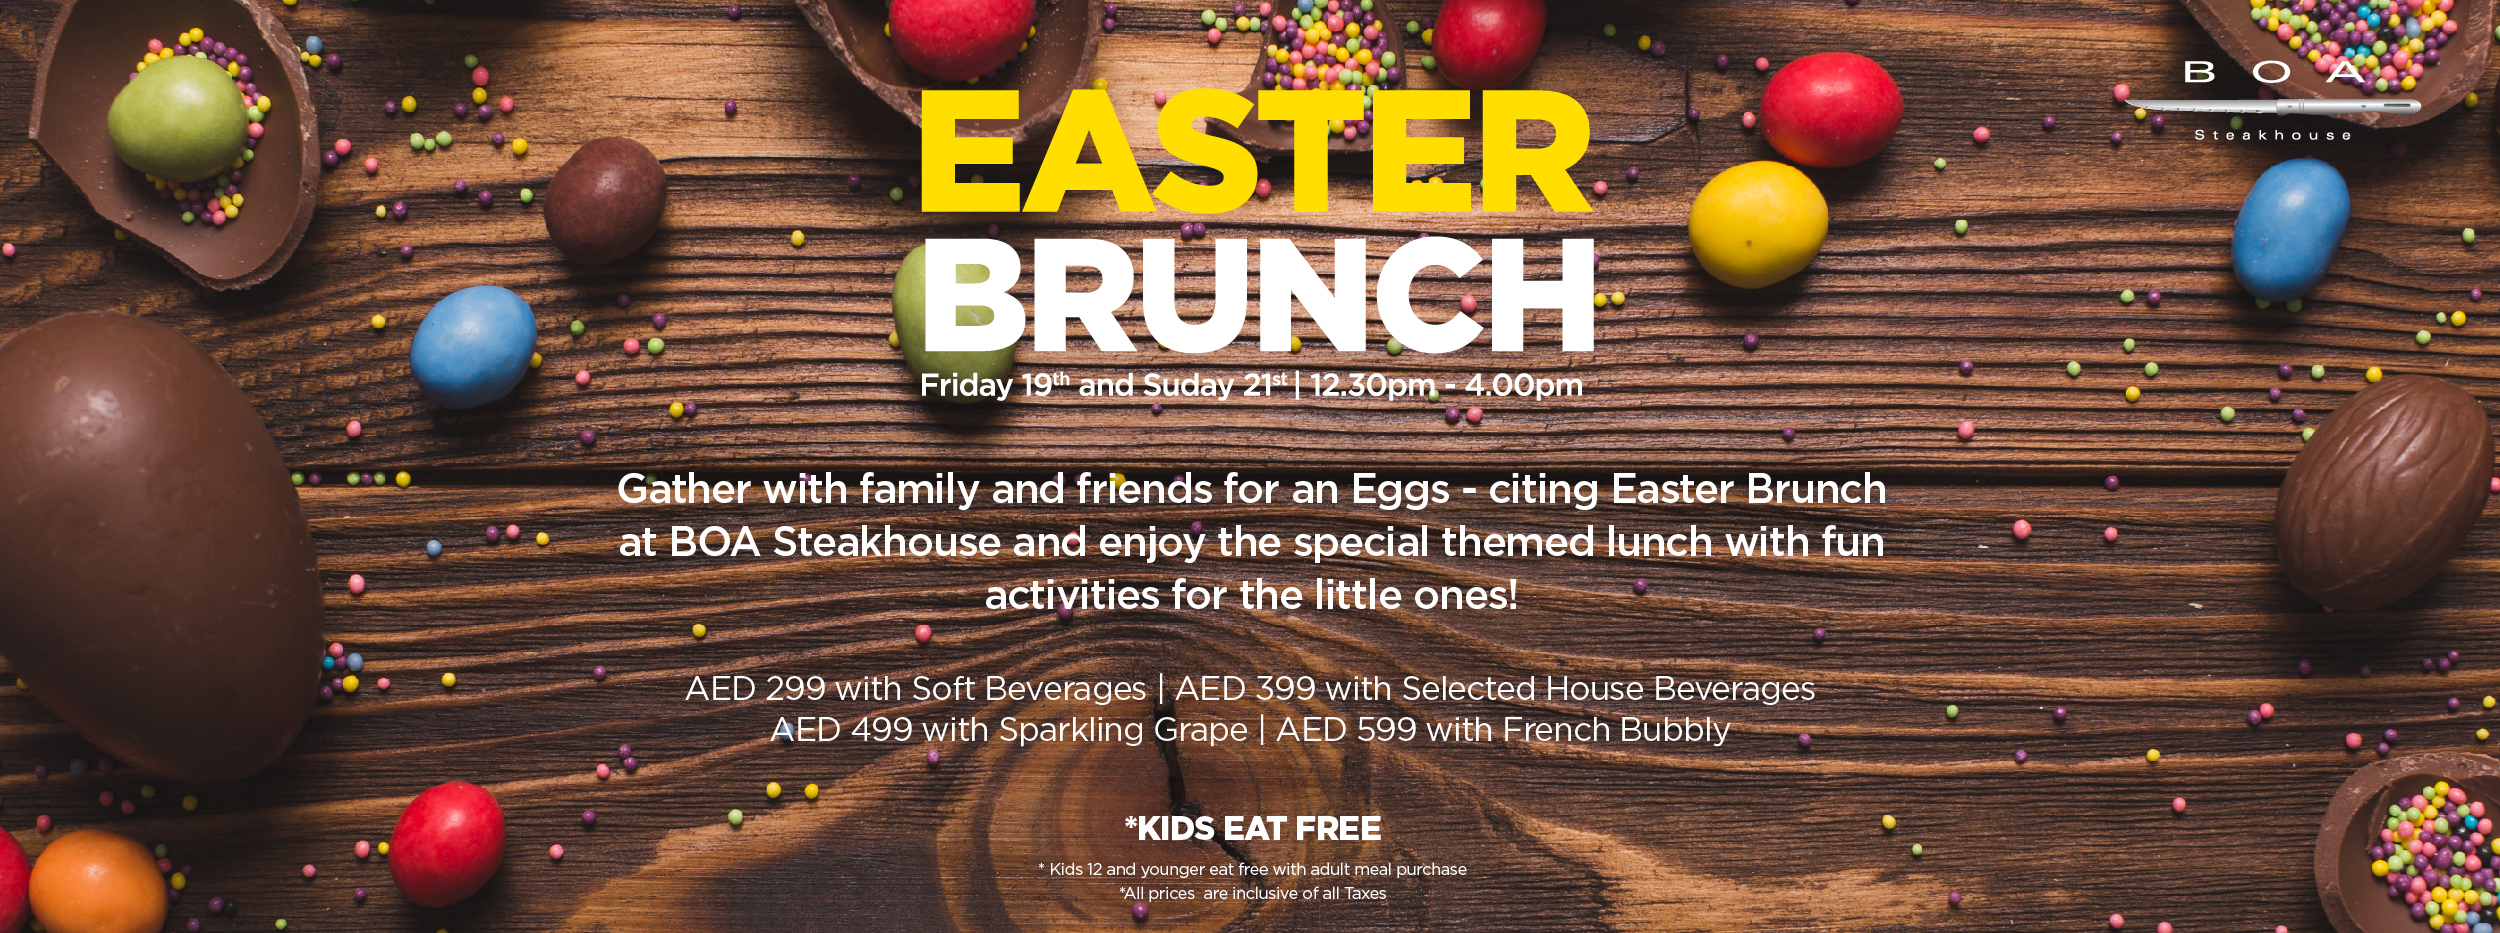 Easter Brunch @ BOA Steakhouse